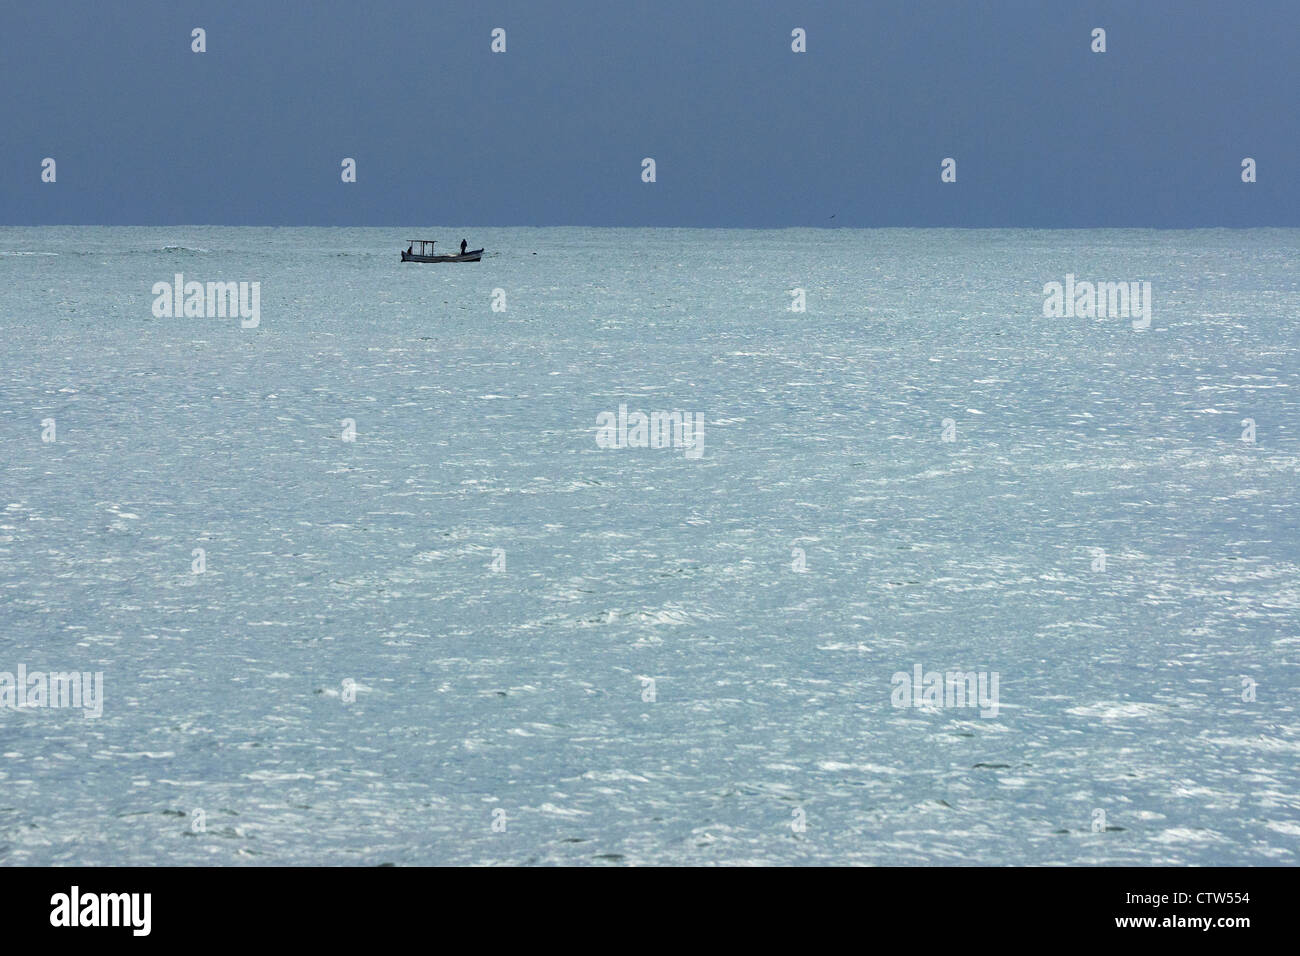 Small fisher boat on the sea - Stock Image